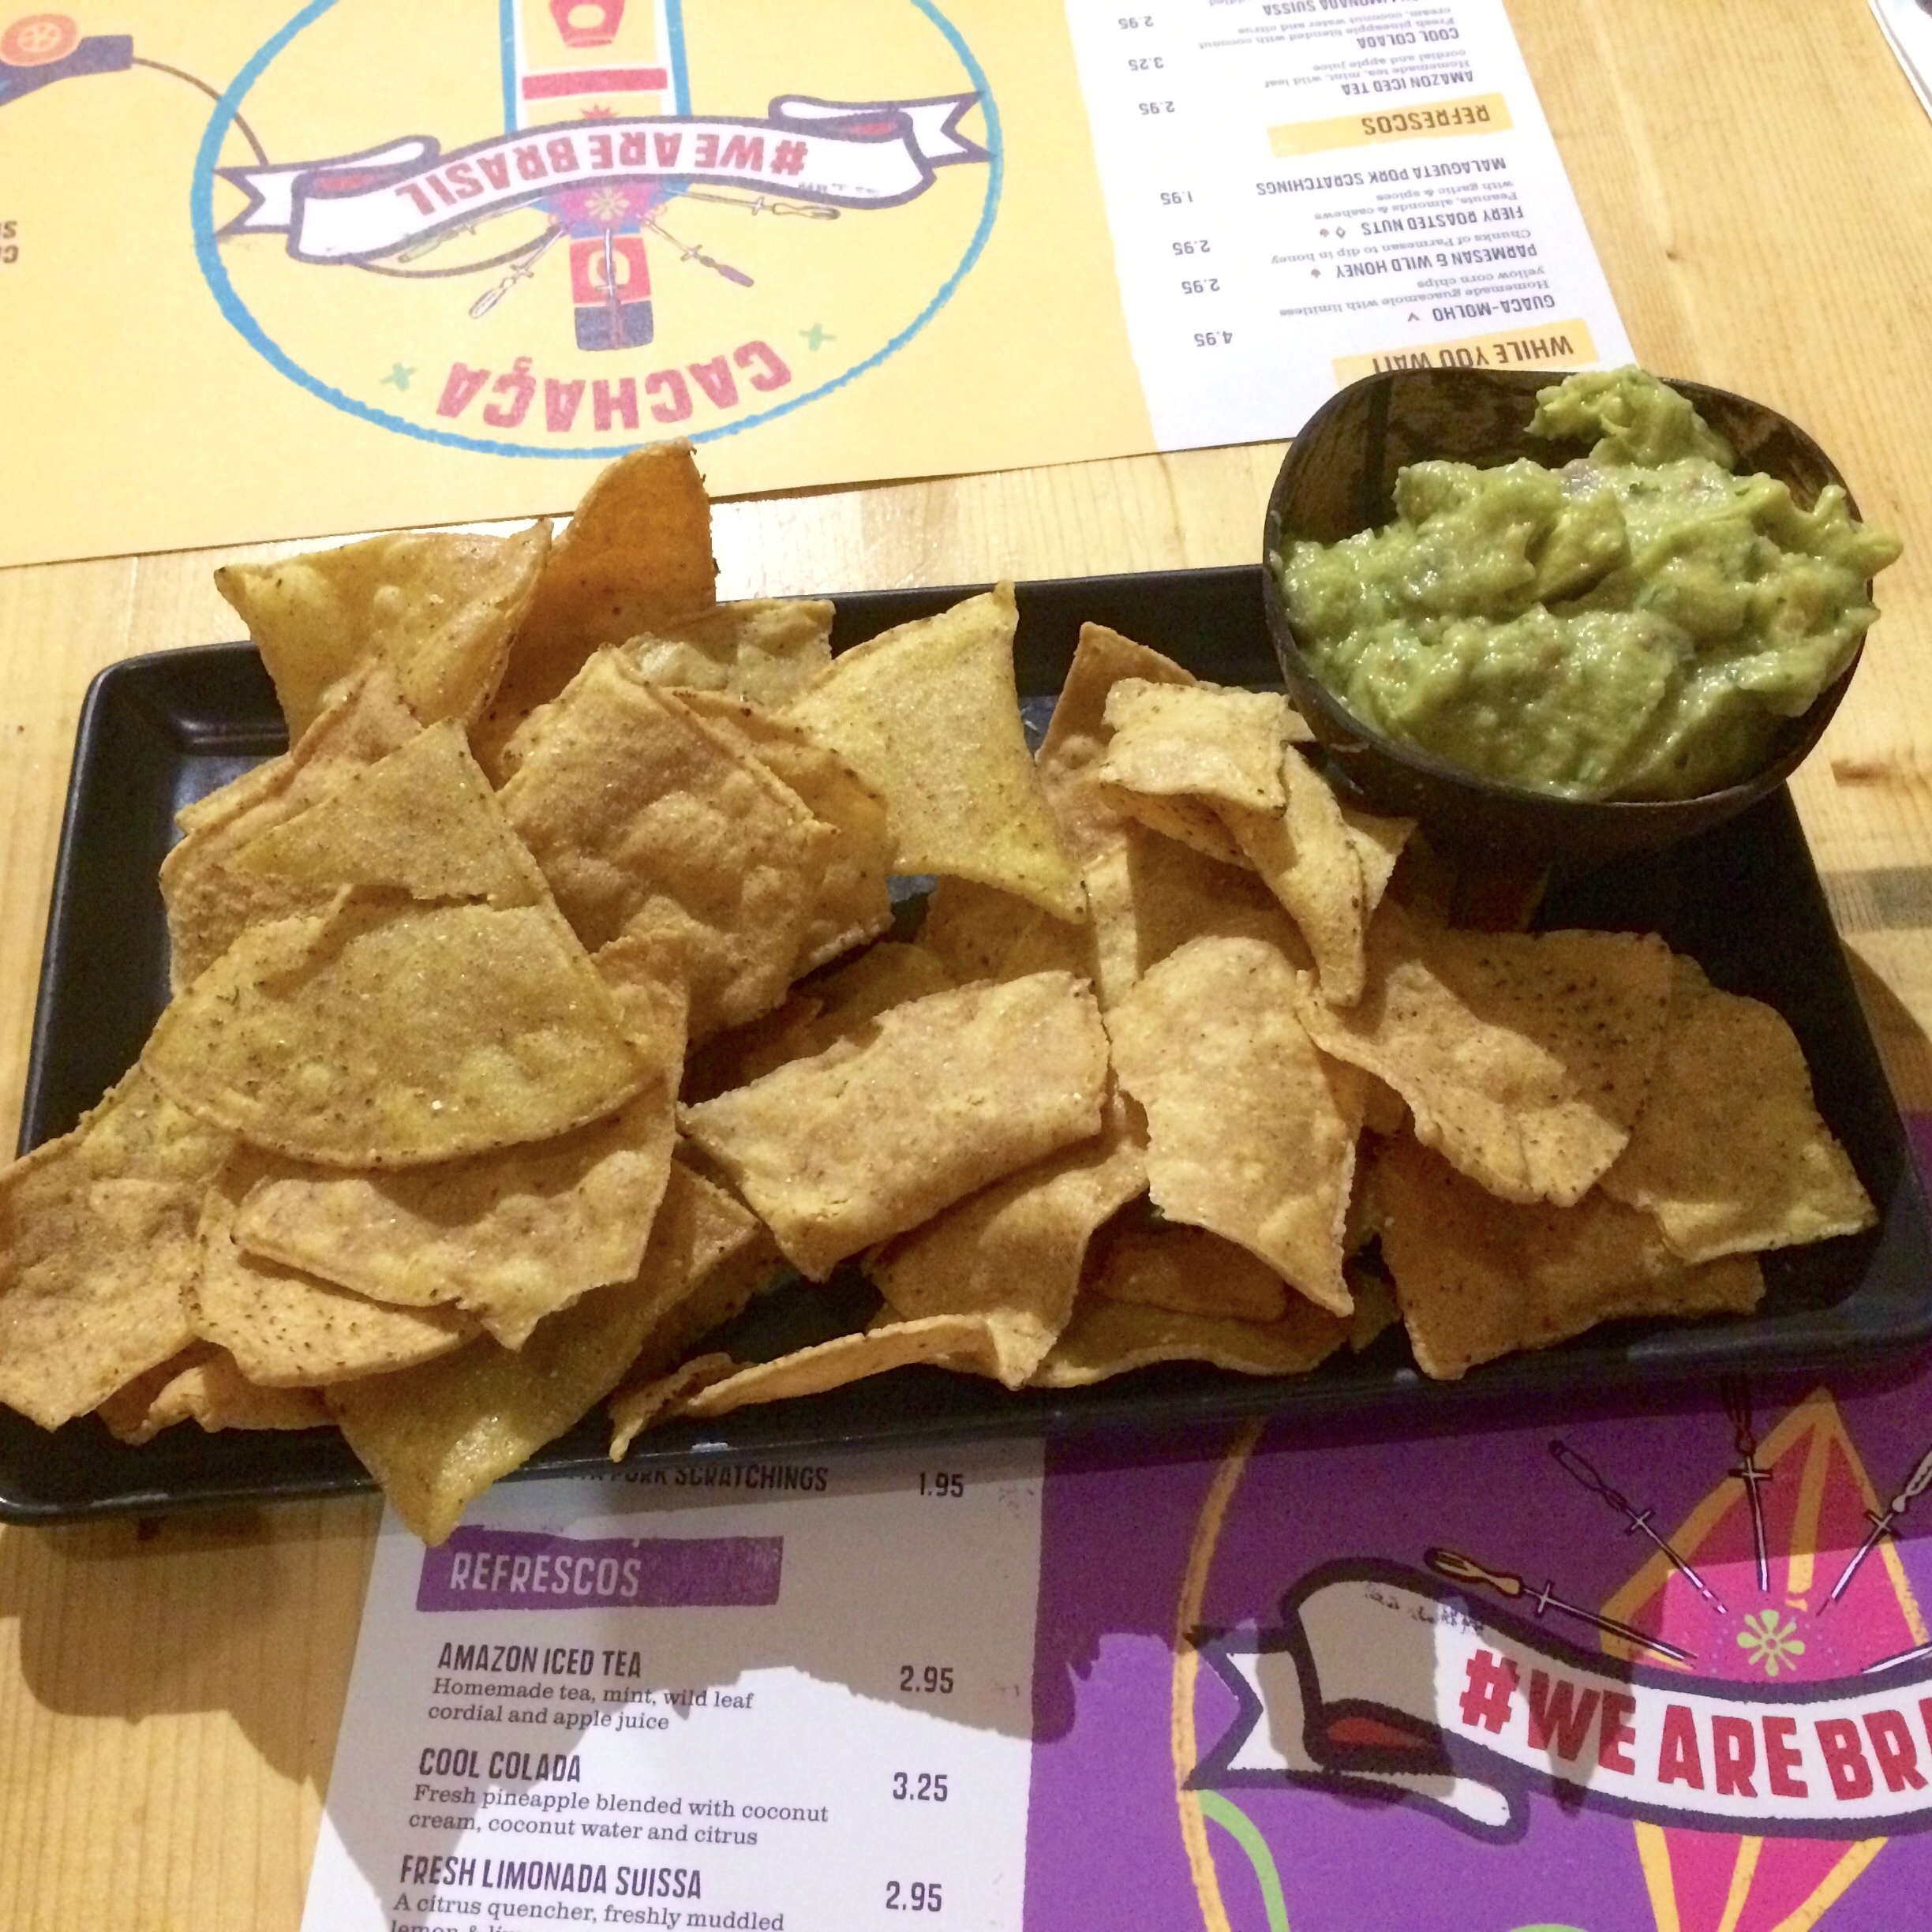 http://i0.wp.com/fatgayvegan.com/wp-content/uploads/2015/12/tortilla-chips.jpg?fit=2448%2C2448